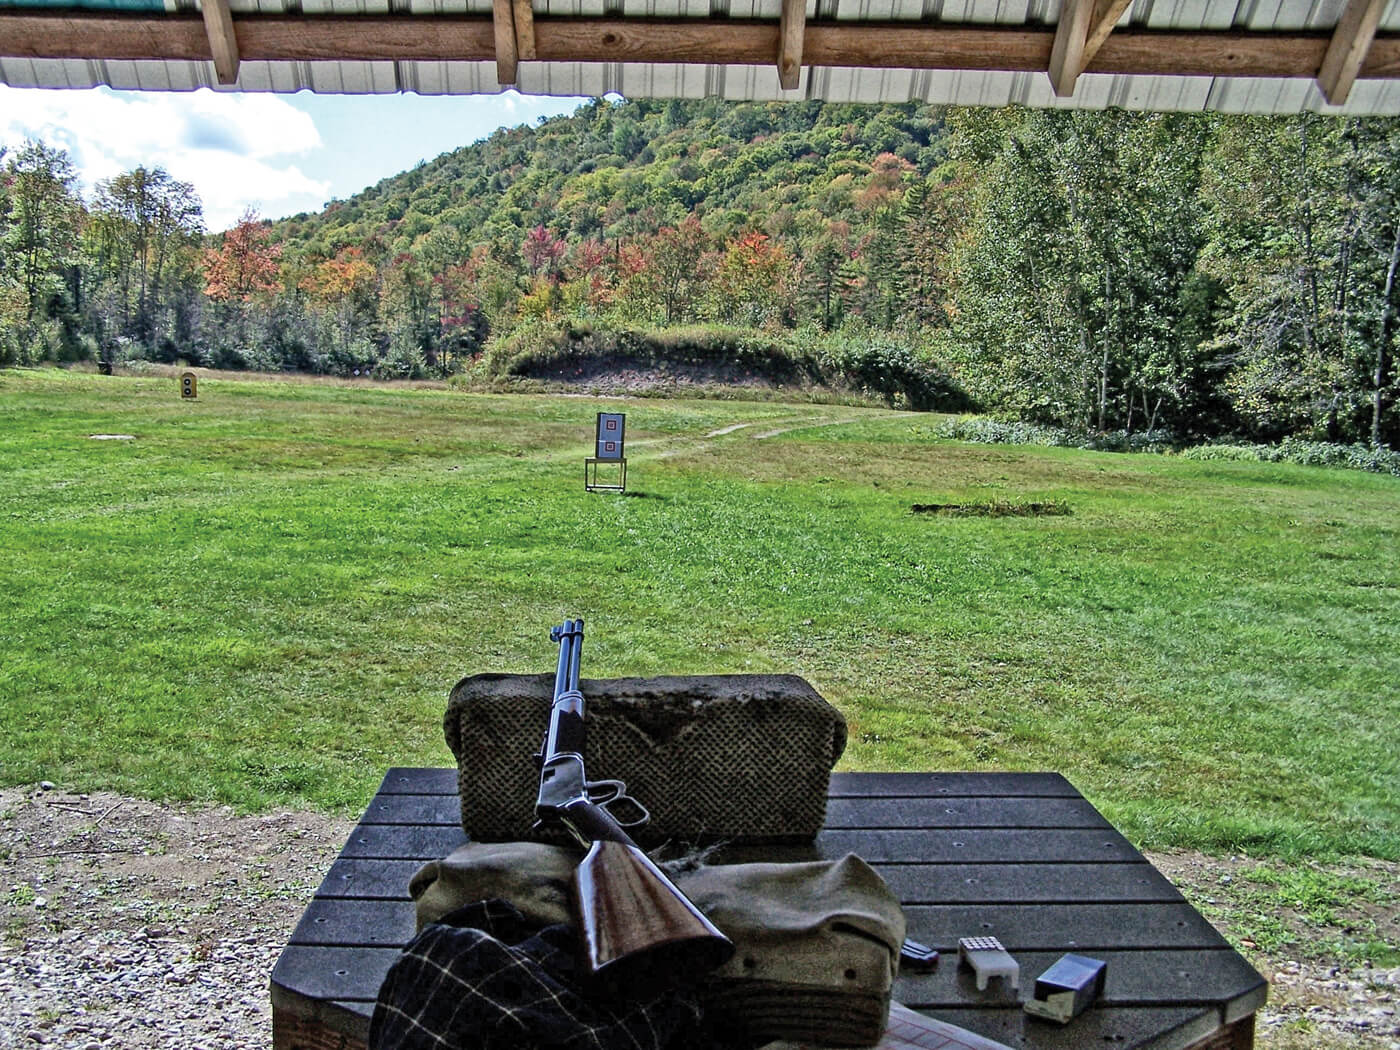 Lever-action rifle on a table set up in front of a 25-yard target in outdoor range